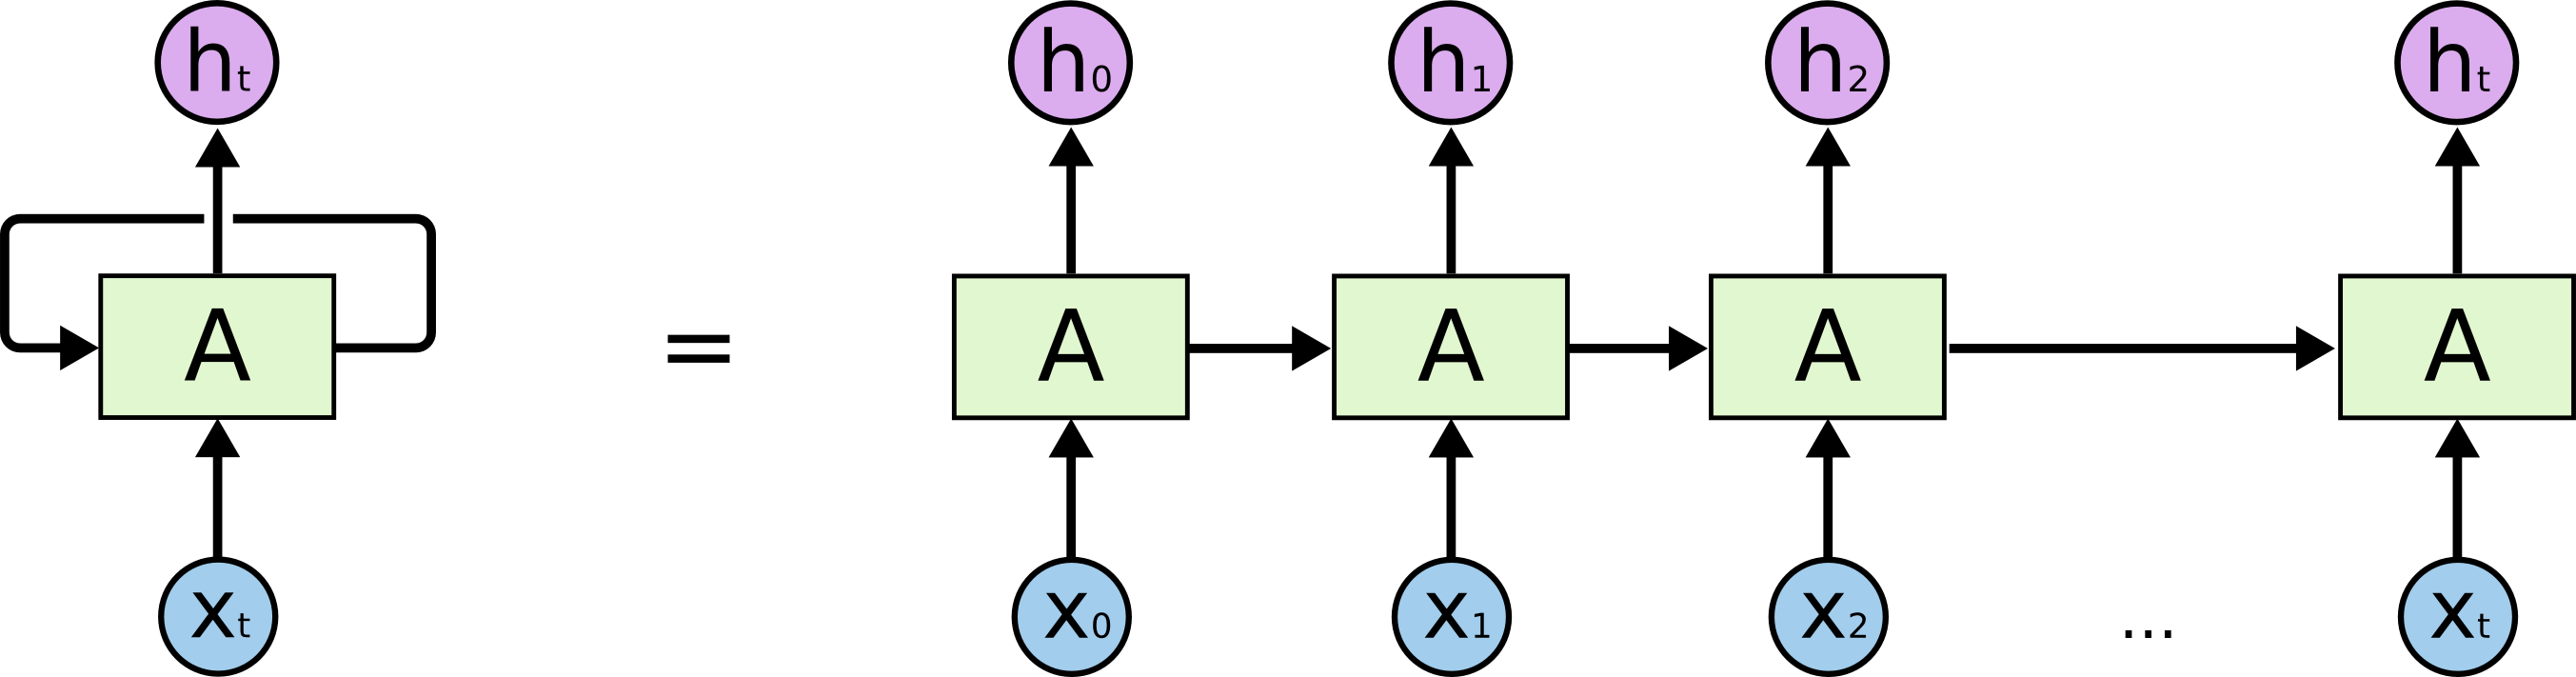 Recurrent neural network (RNN) block diagram, both rolled and unrolled